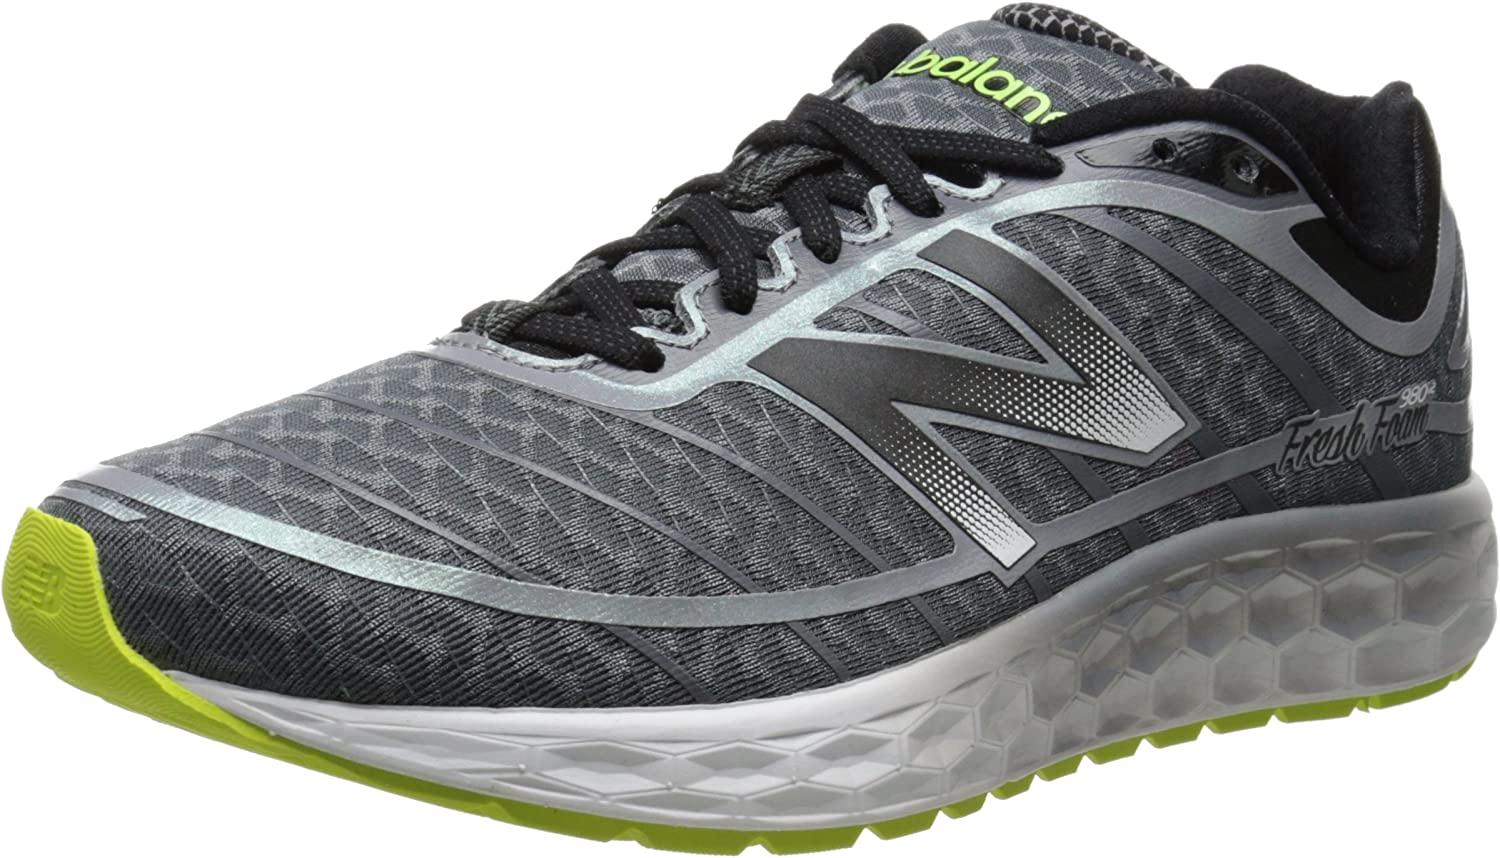 New Balance Men's M980 Boracay Running Shoe